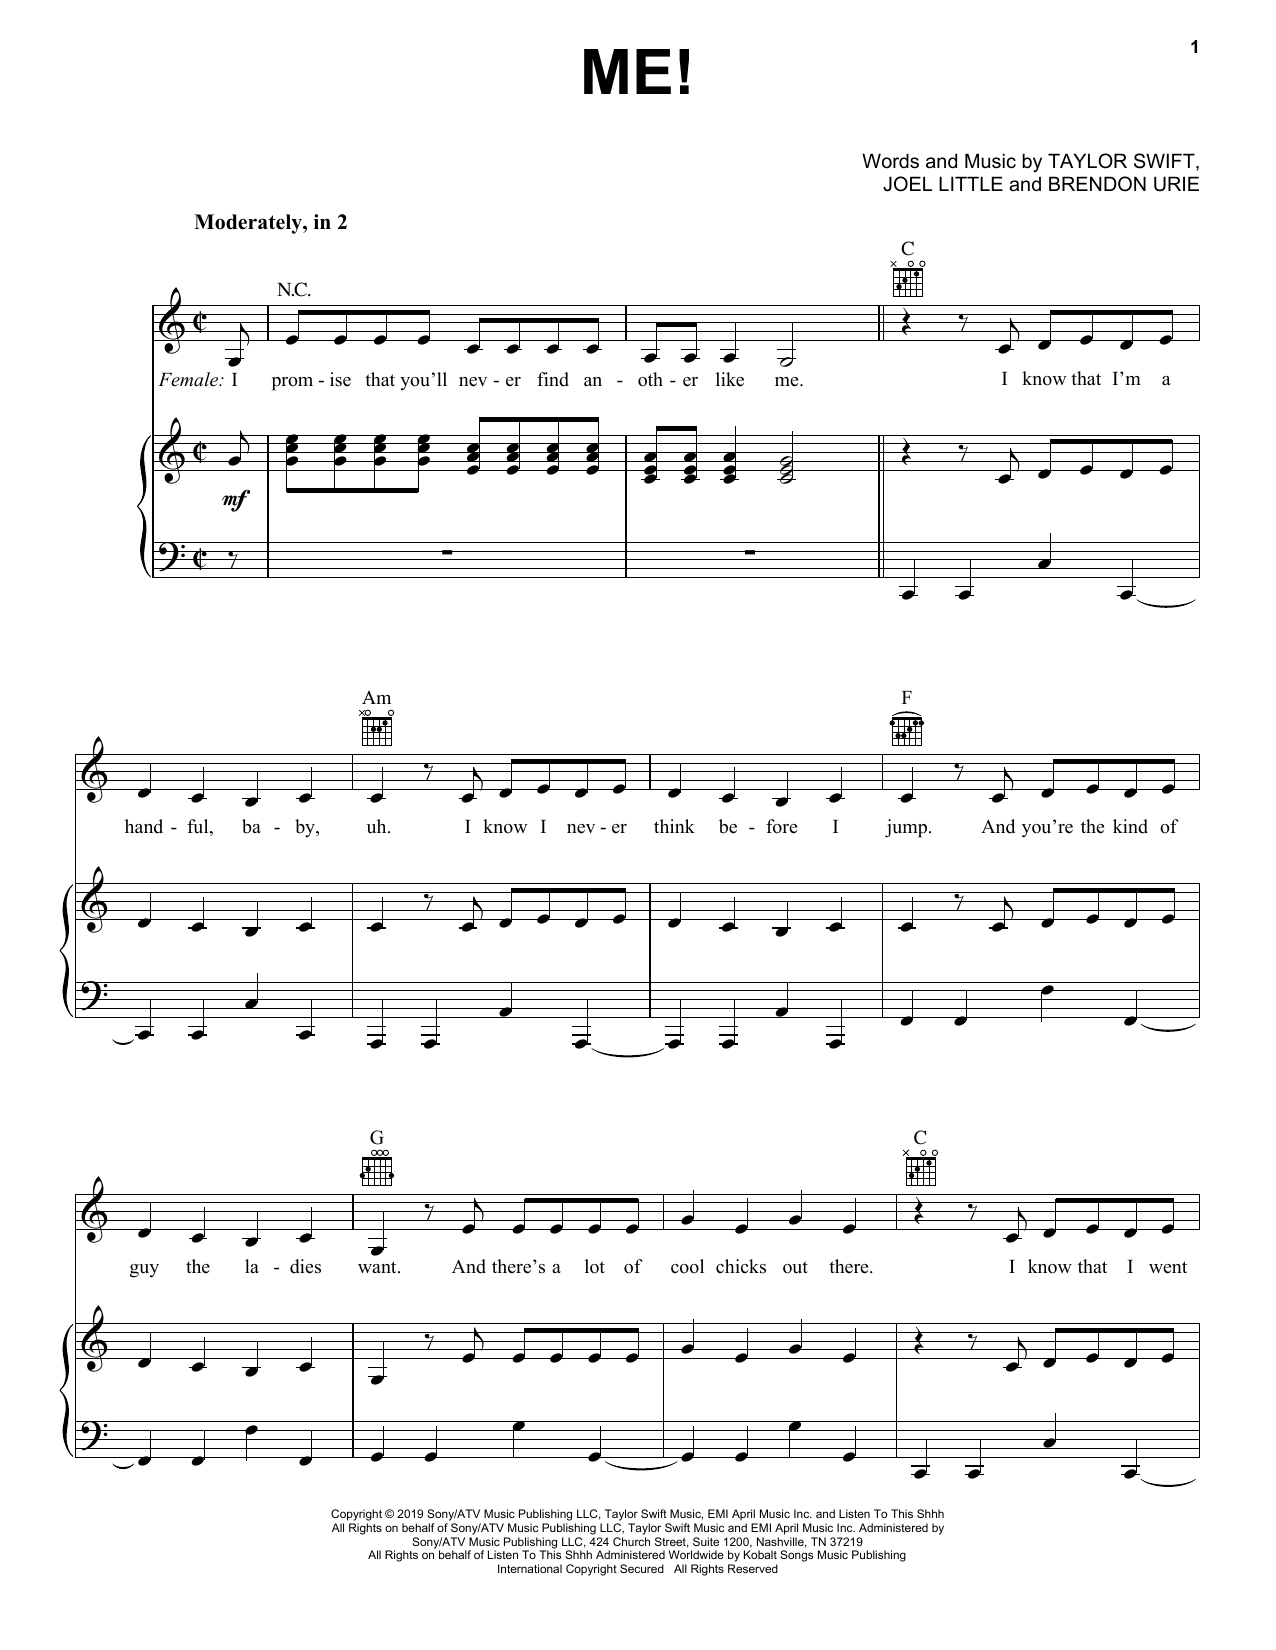 Taylor Swift ME! (feat. Brendon Urie of Panic! At The Disco) sheet music notes and chords